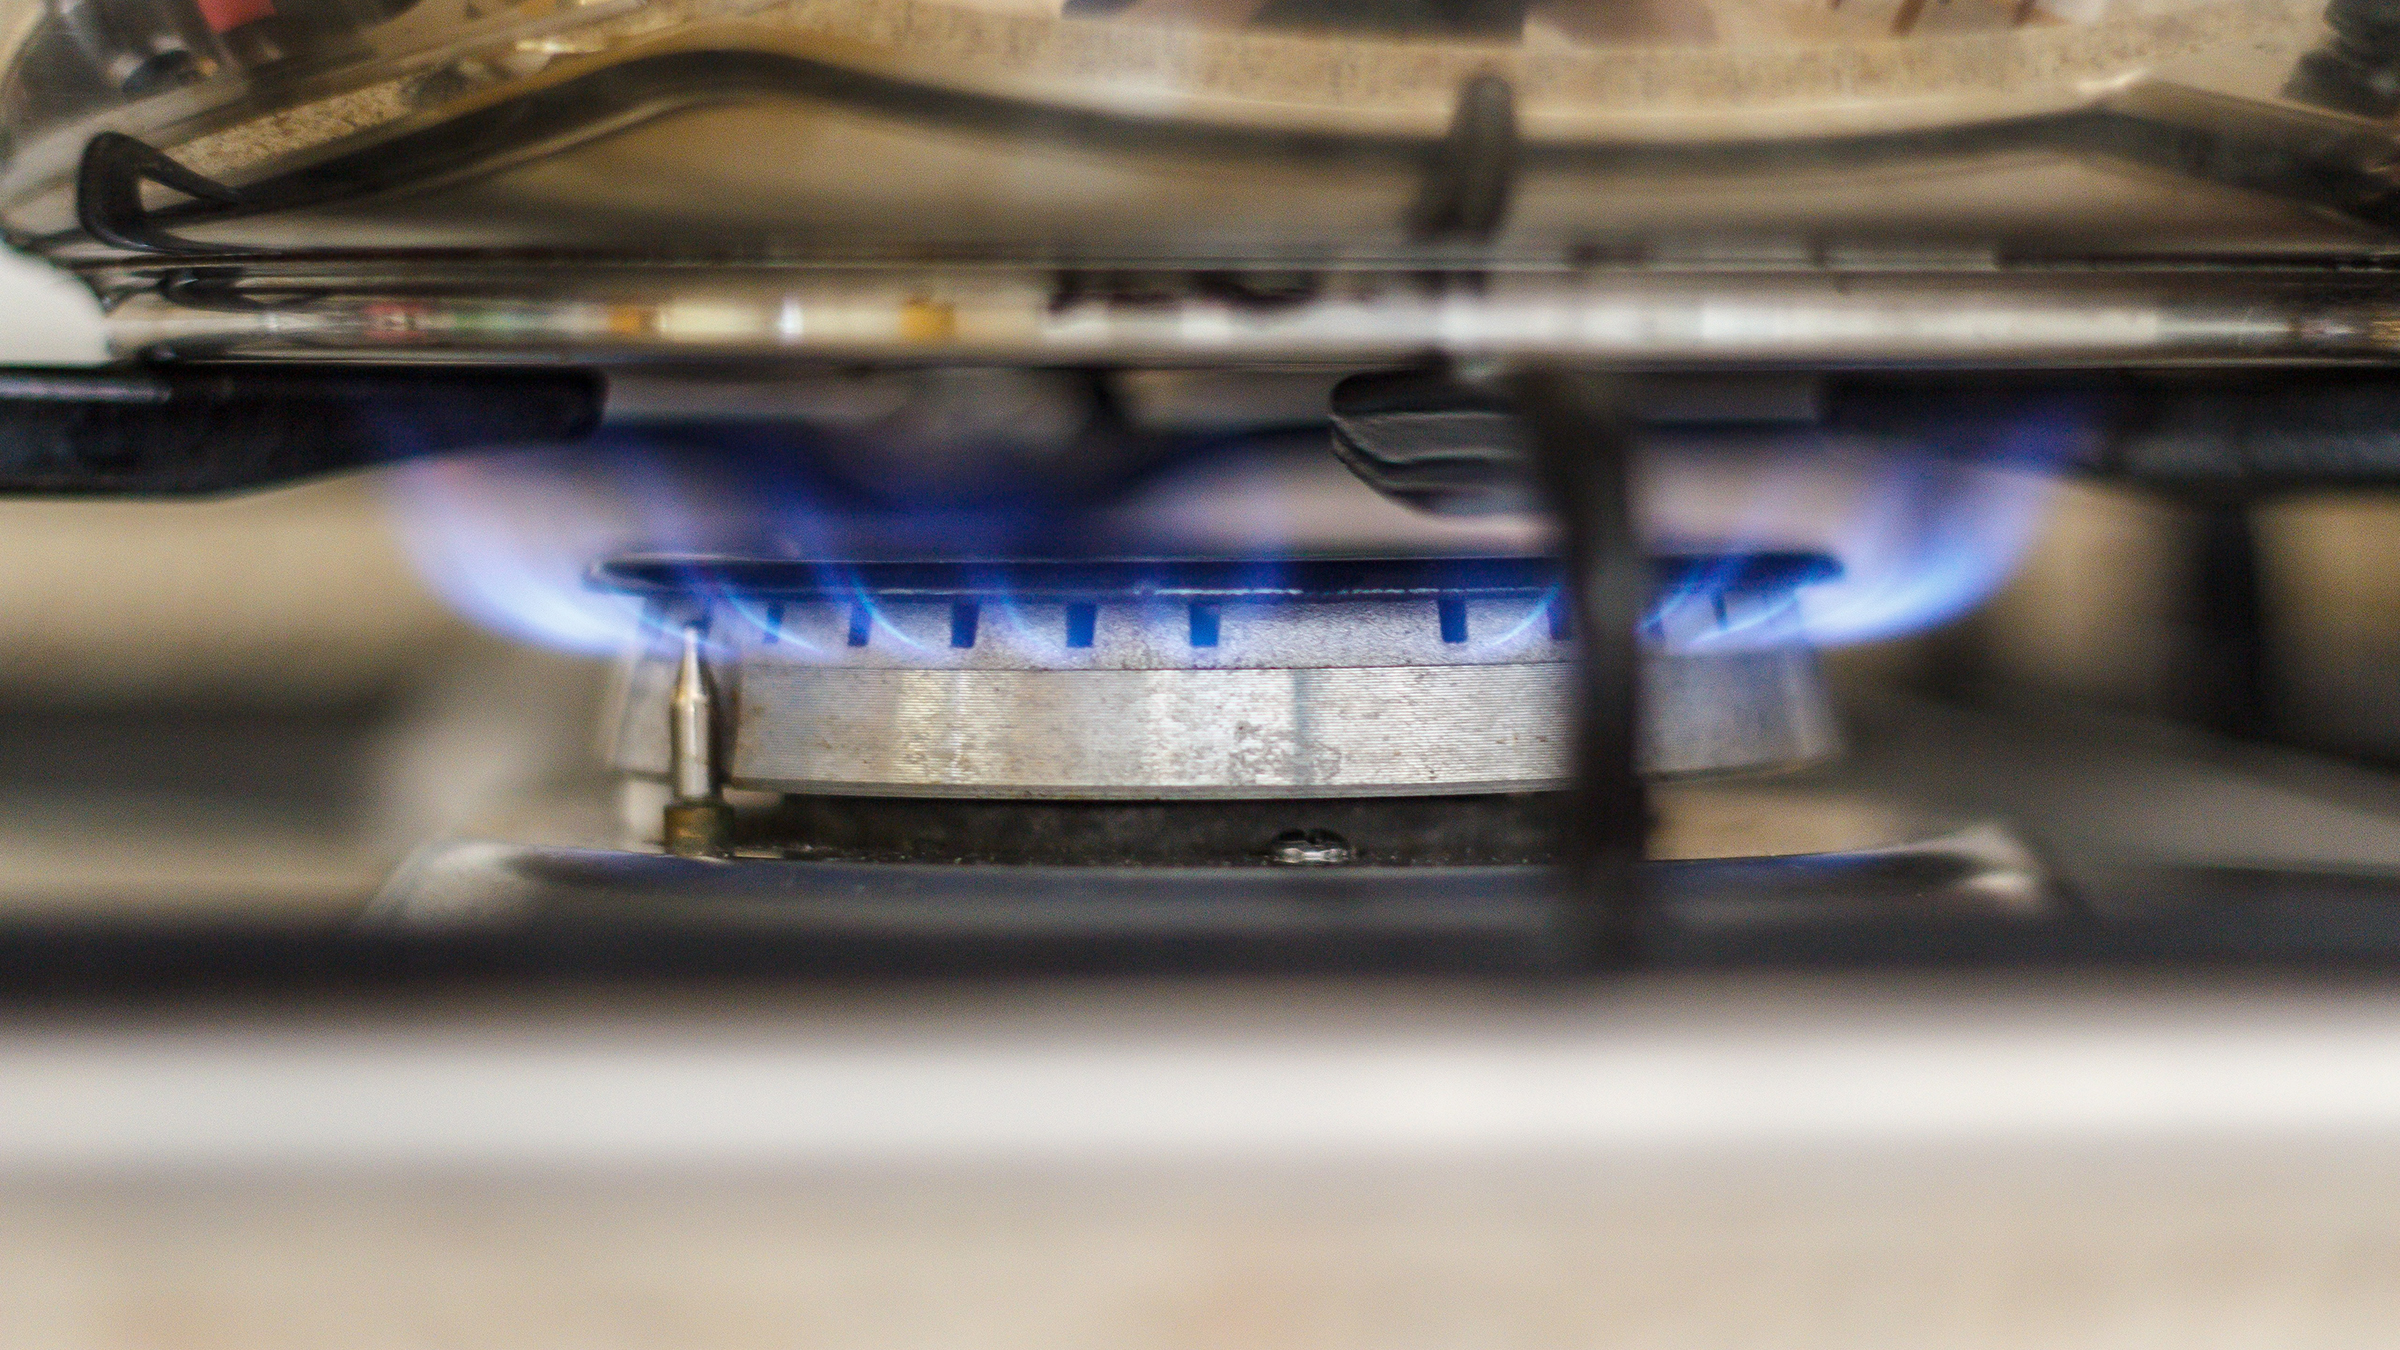 In a power outage, you may still be able to use your gas range. Check your owners manual first, however, to ensure it's safe.